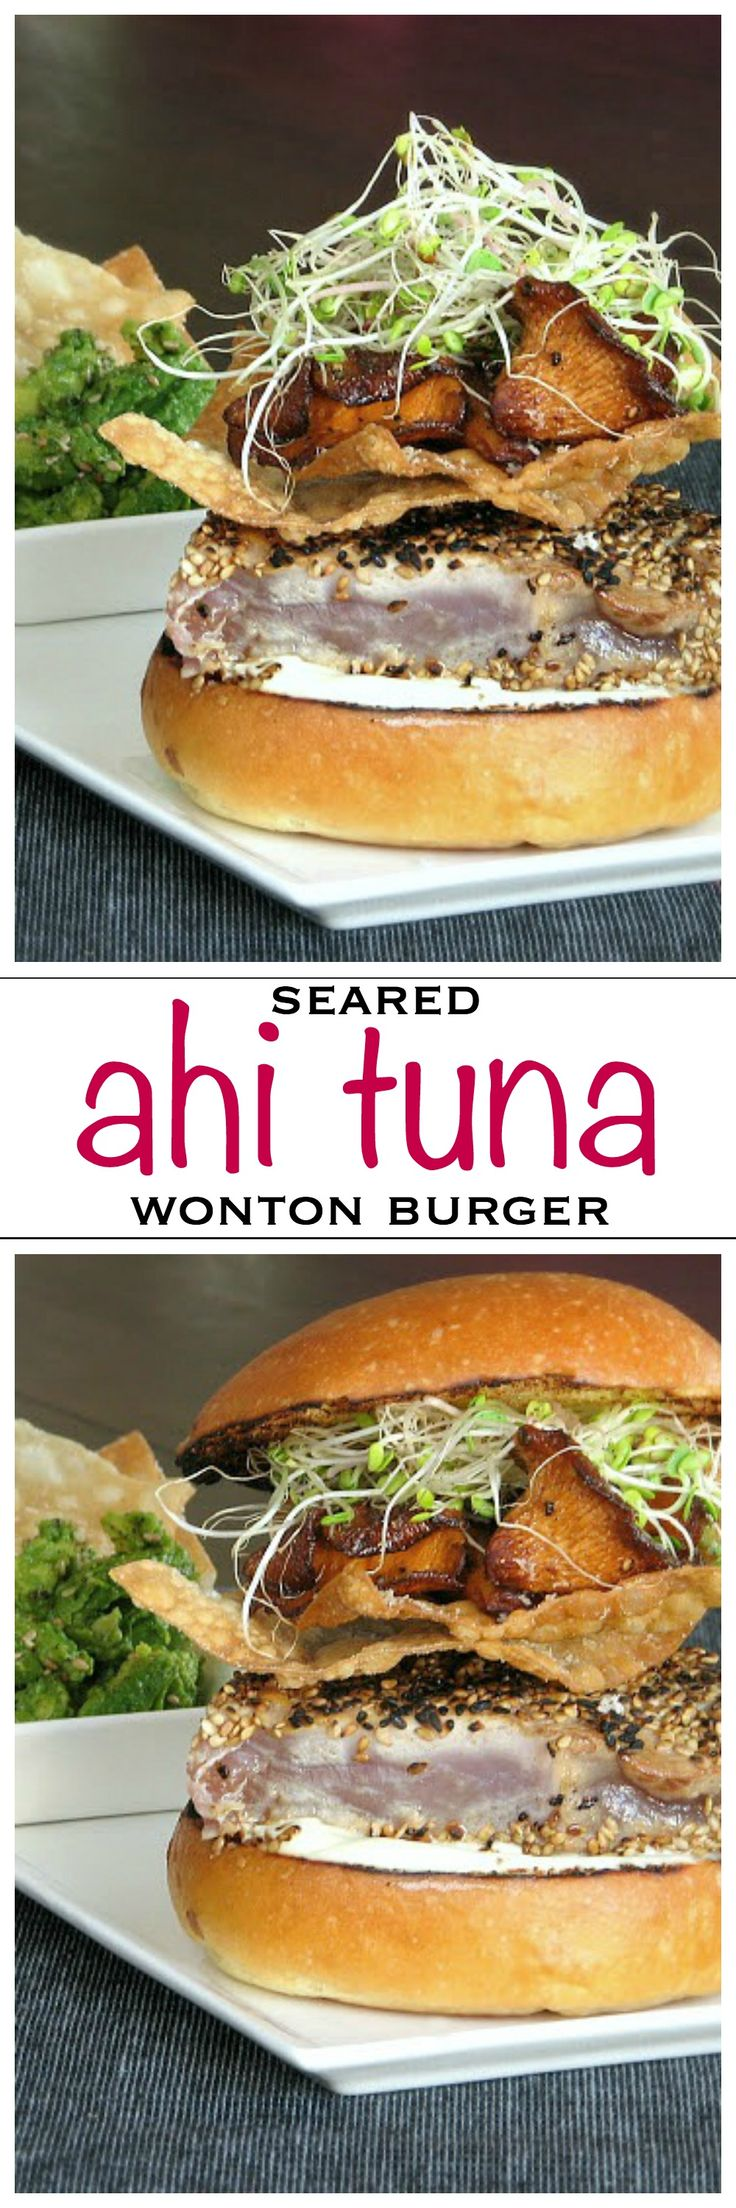 Seared ahi tuna on a toasted bun with mushrooms and crispy wontons | Foodness Gracious